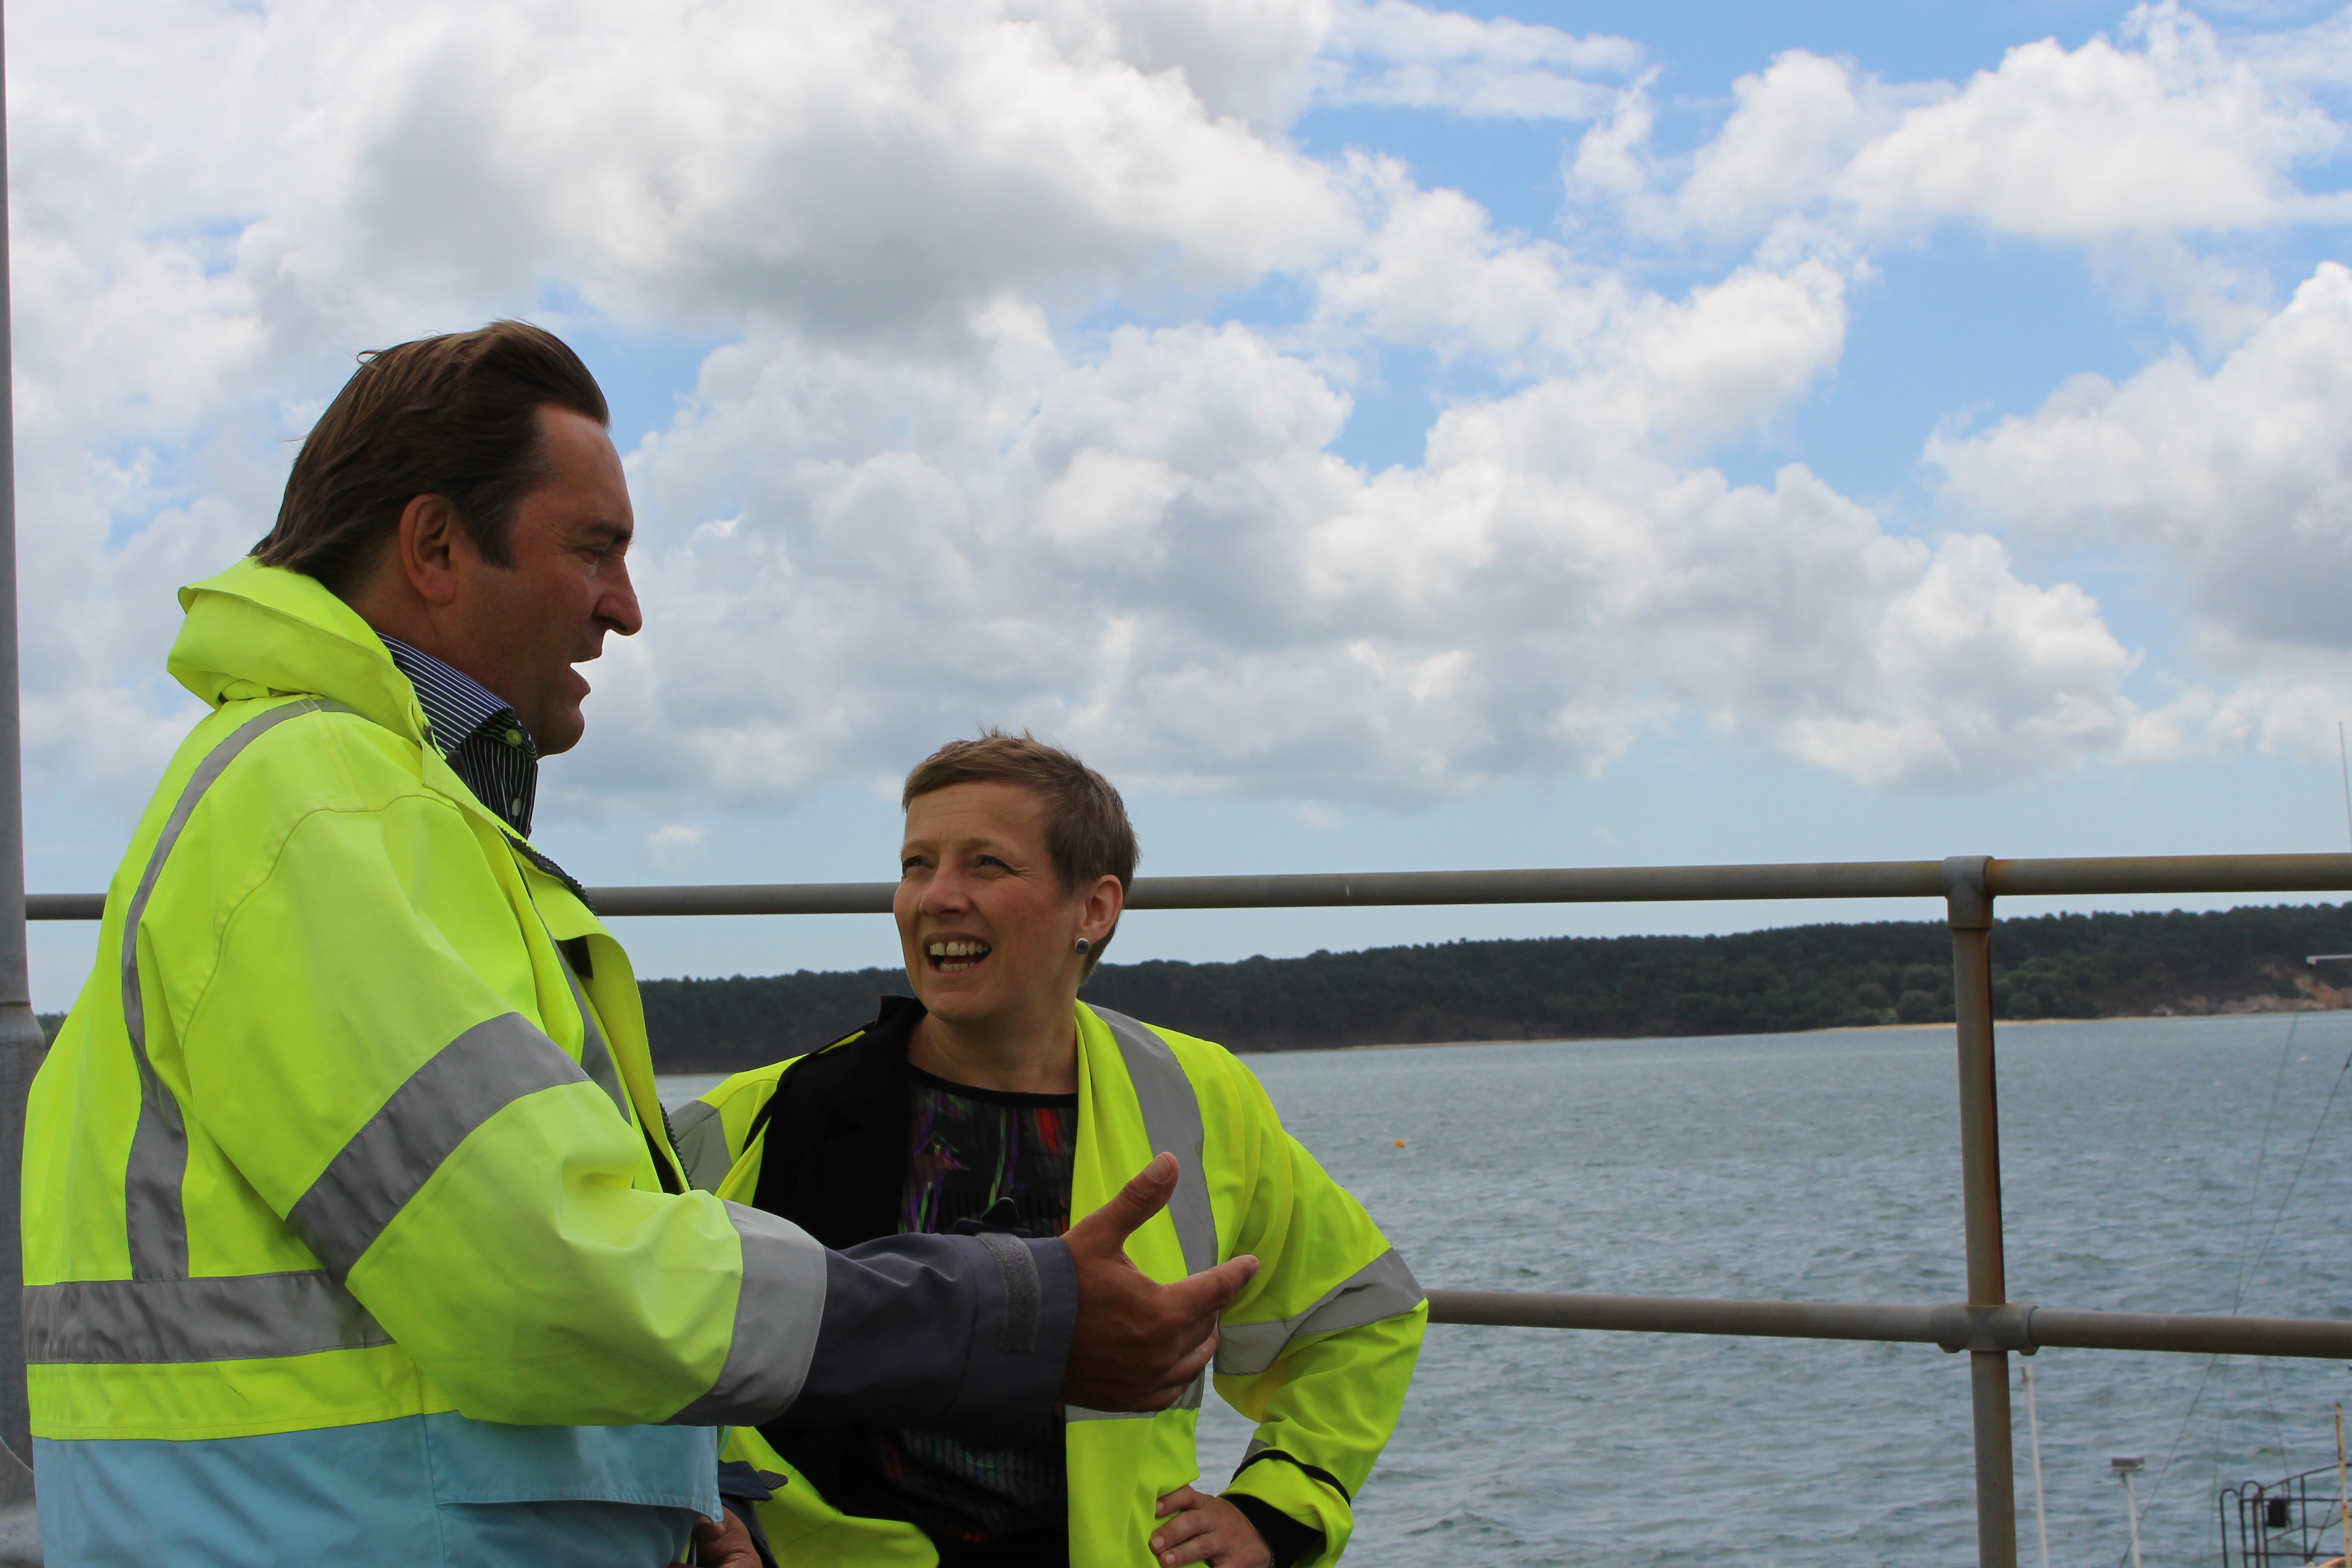 Clare Moody MEP with Jim Stewart, Chief Executive of Poole Harbour Commissioners